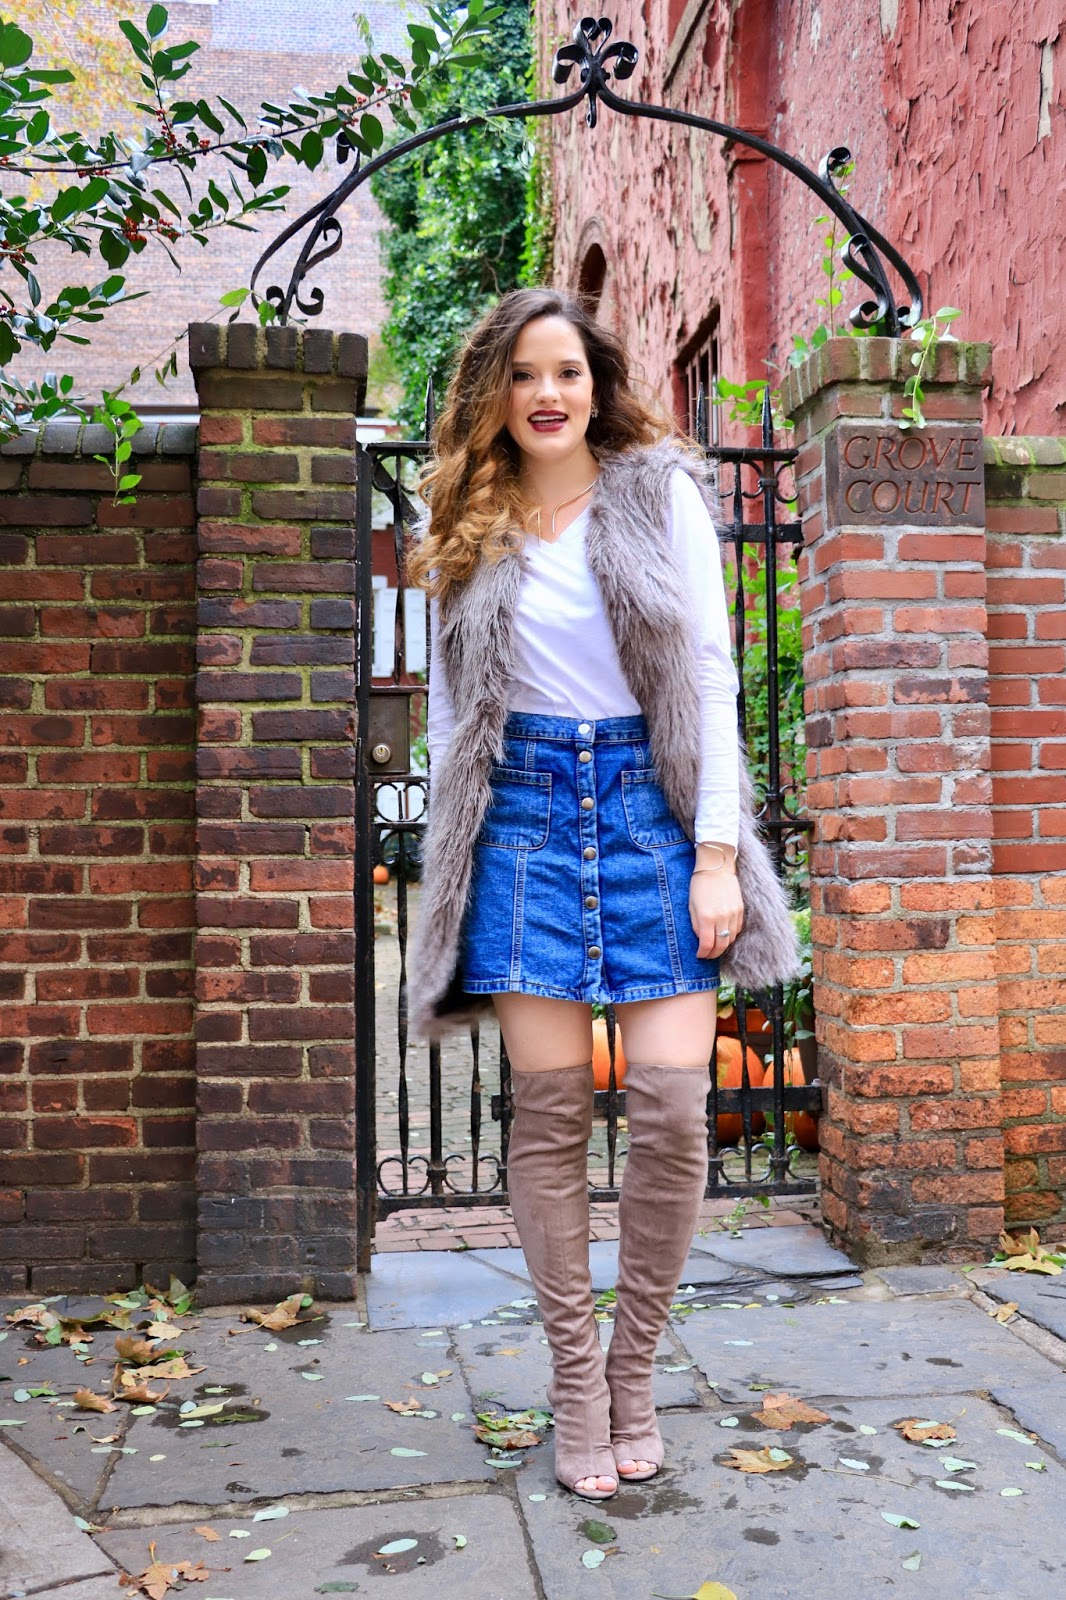 Nyc fashion blogger Kathleen Harper showing how to wear thigh-high boots